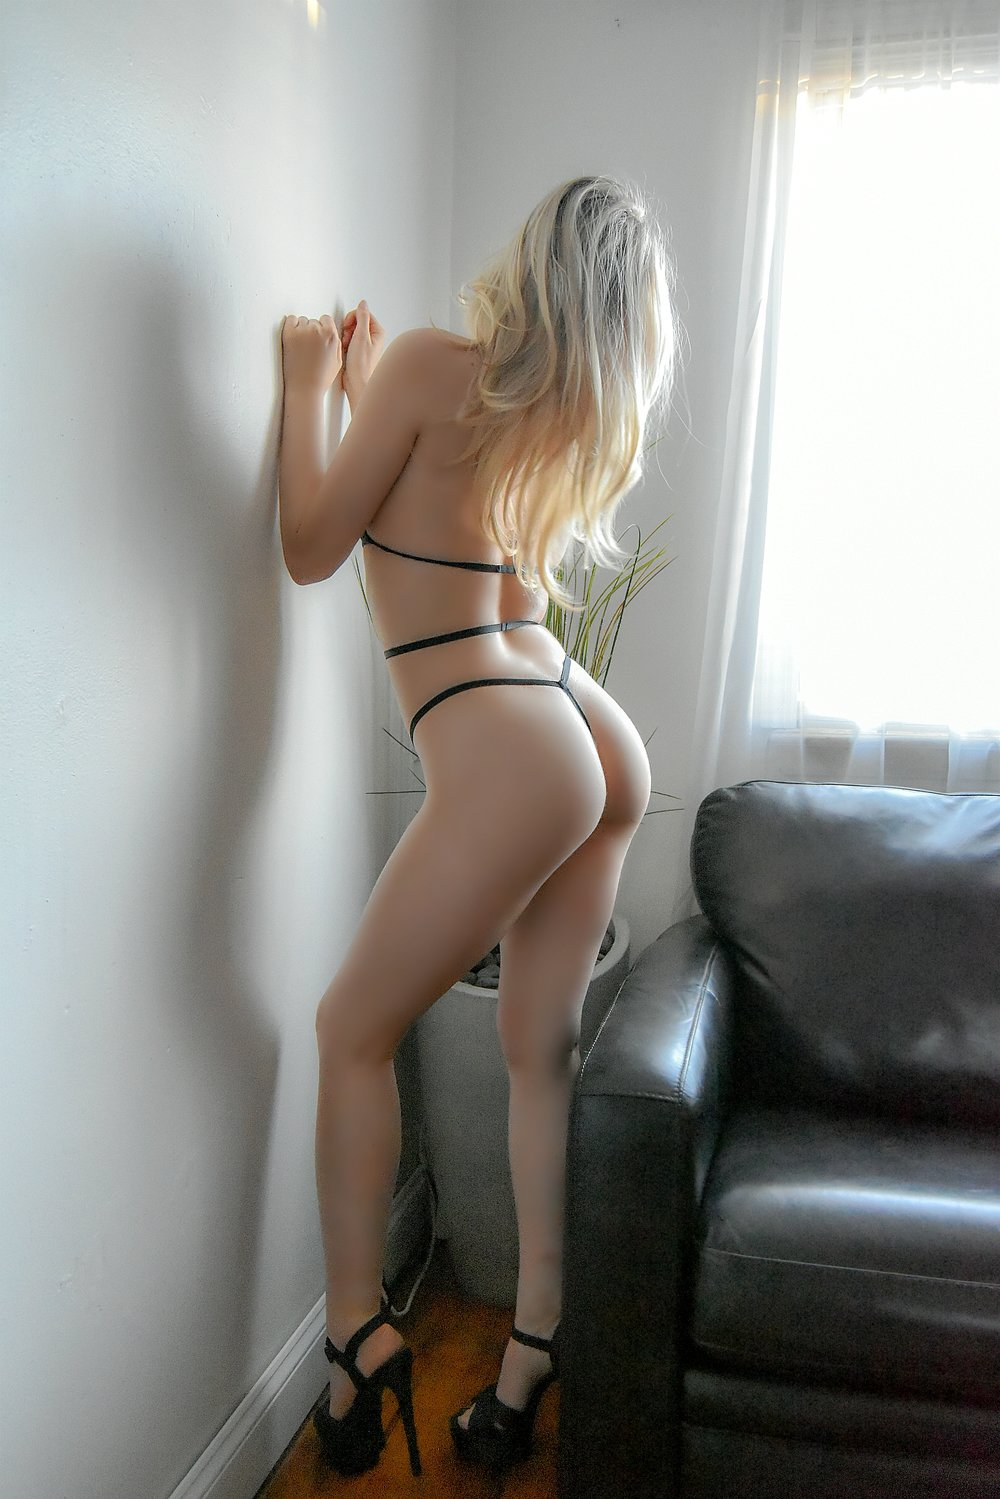 Scarlett: Charming Escort Model - Are you ready for a lady who is natural as well as authentic? Then you should meet our charming escort model Scarlett.View Scarlett's Profile